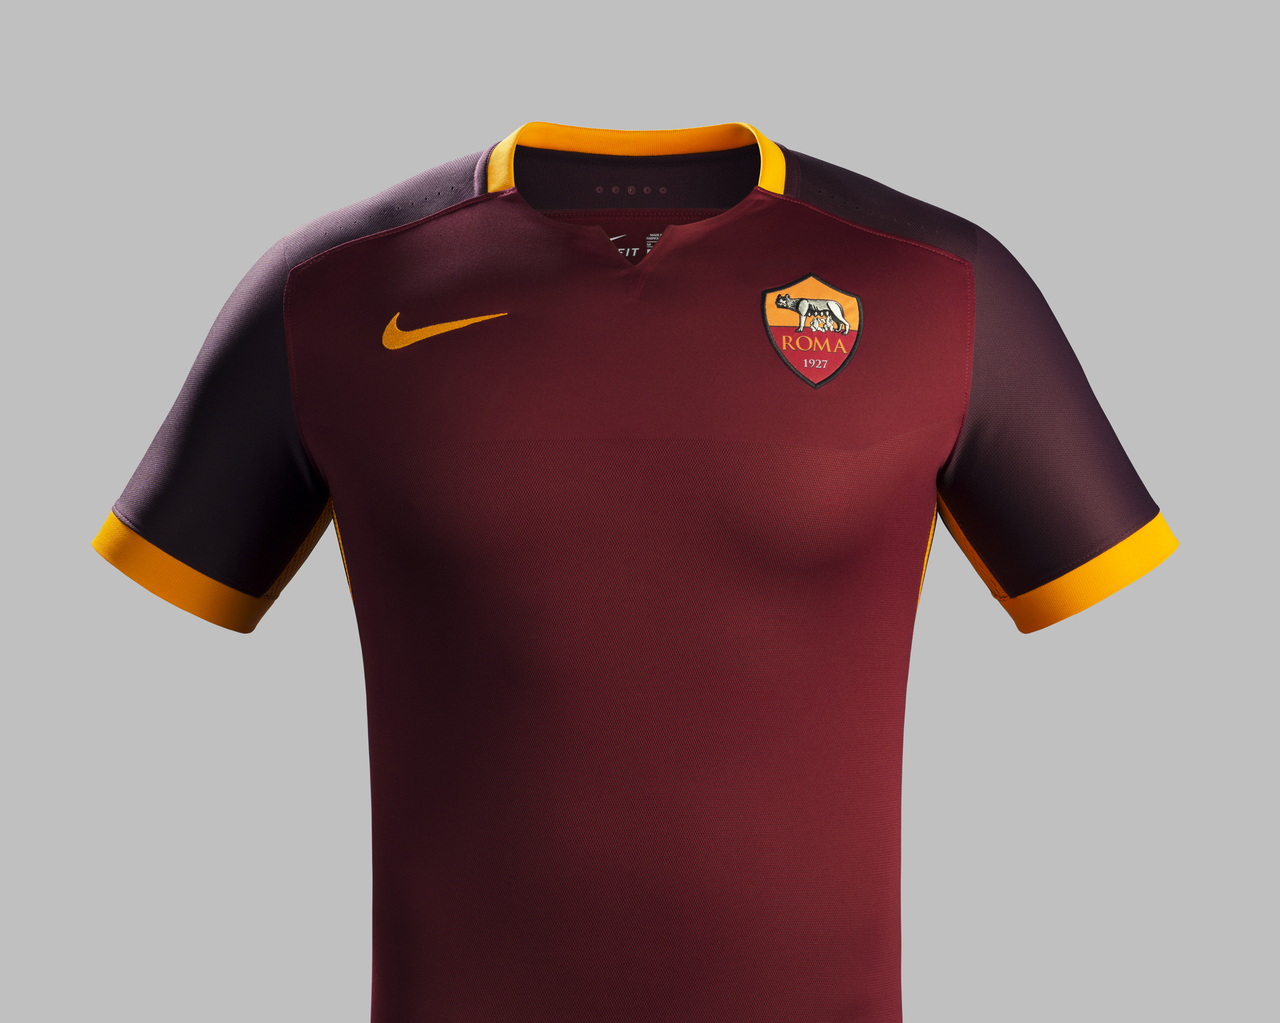 www.blacknla.com uniformes de soccer Nike Average rating: 4.2 , based